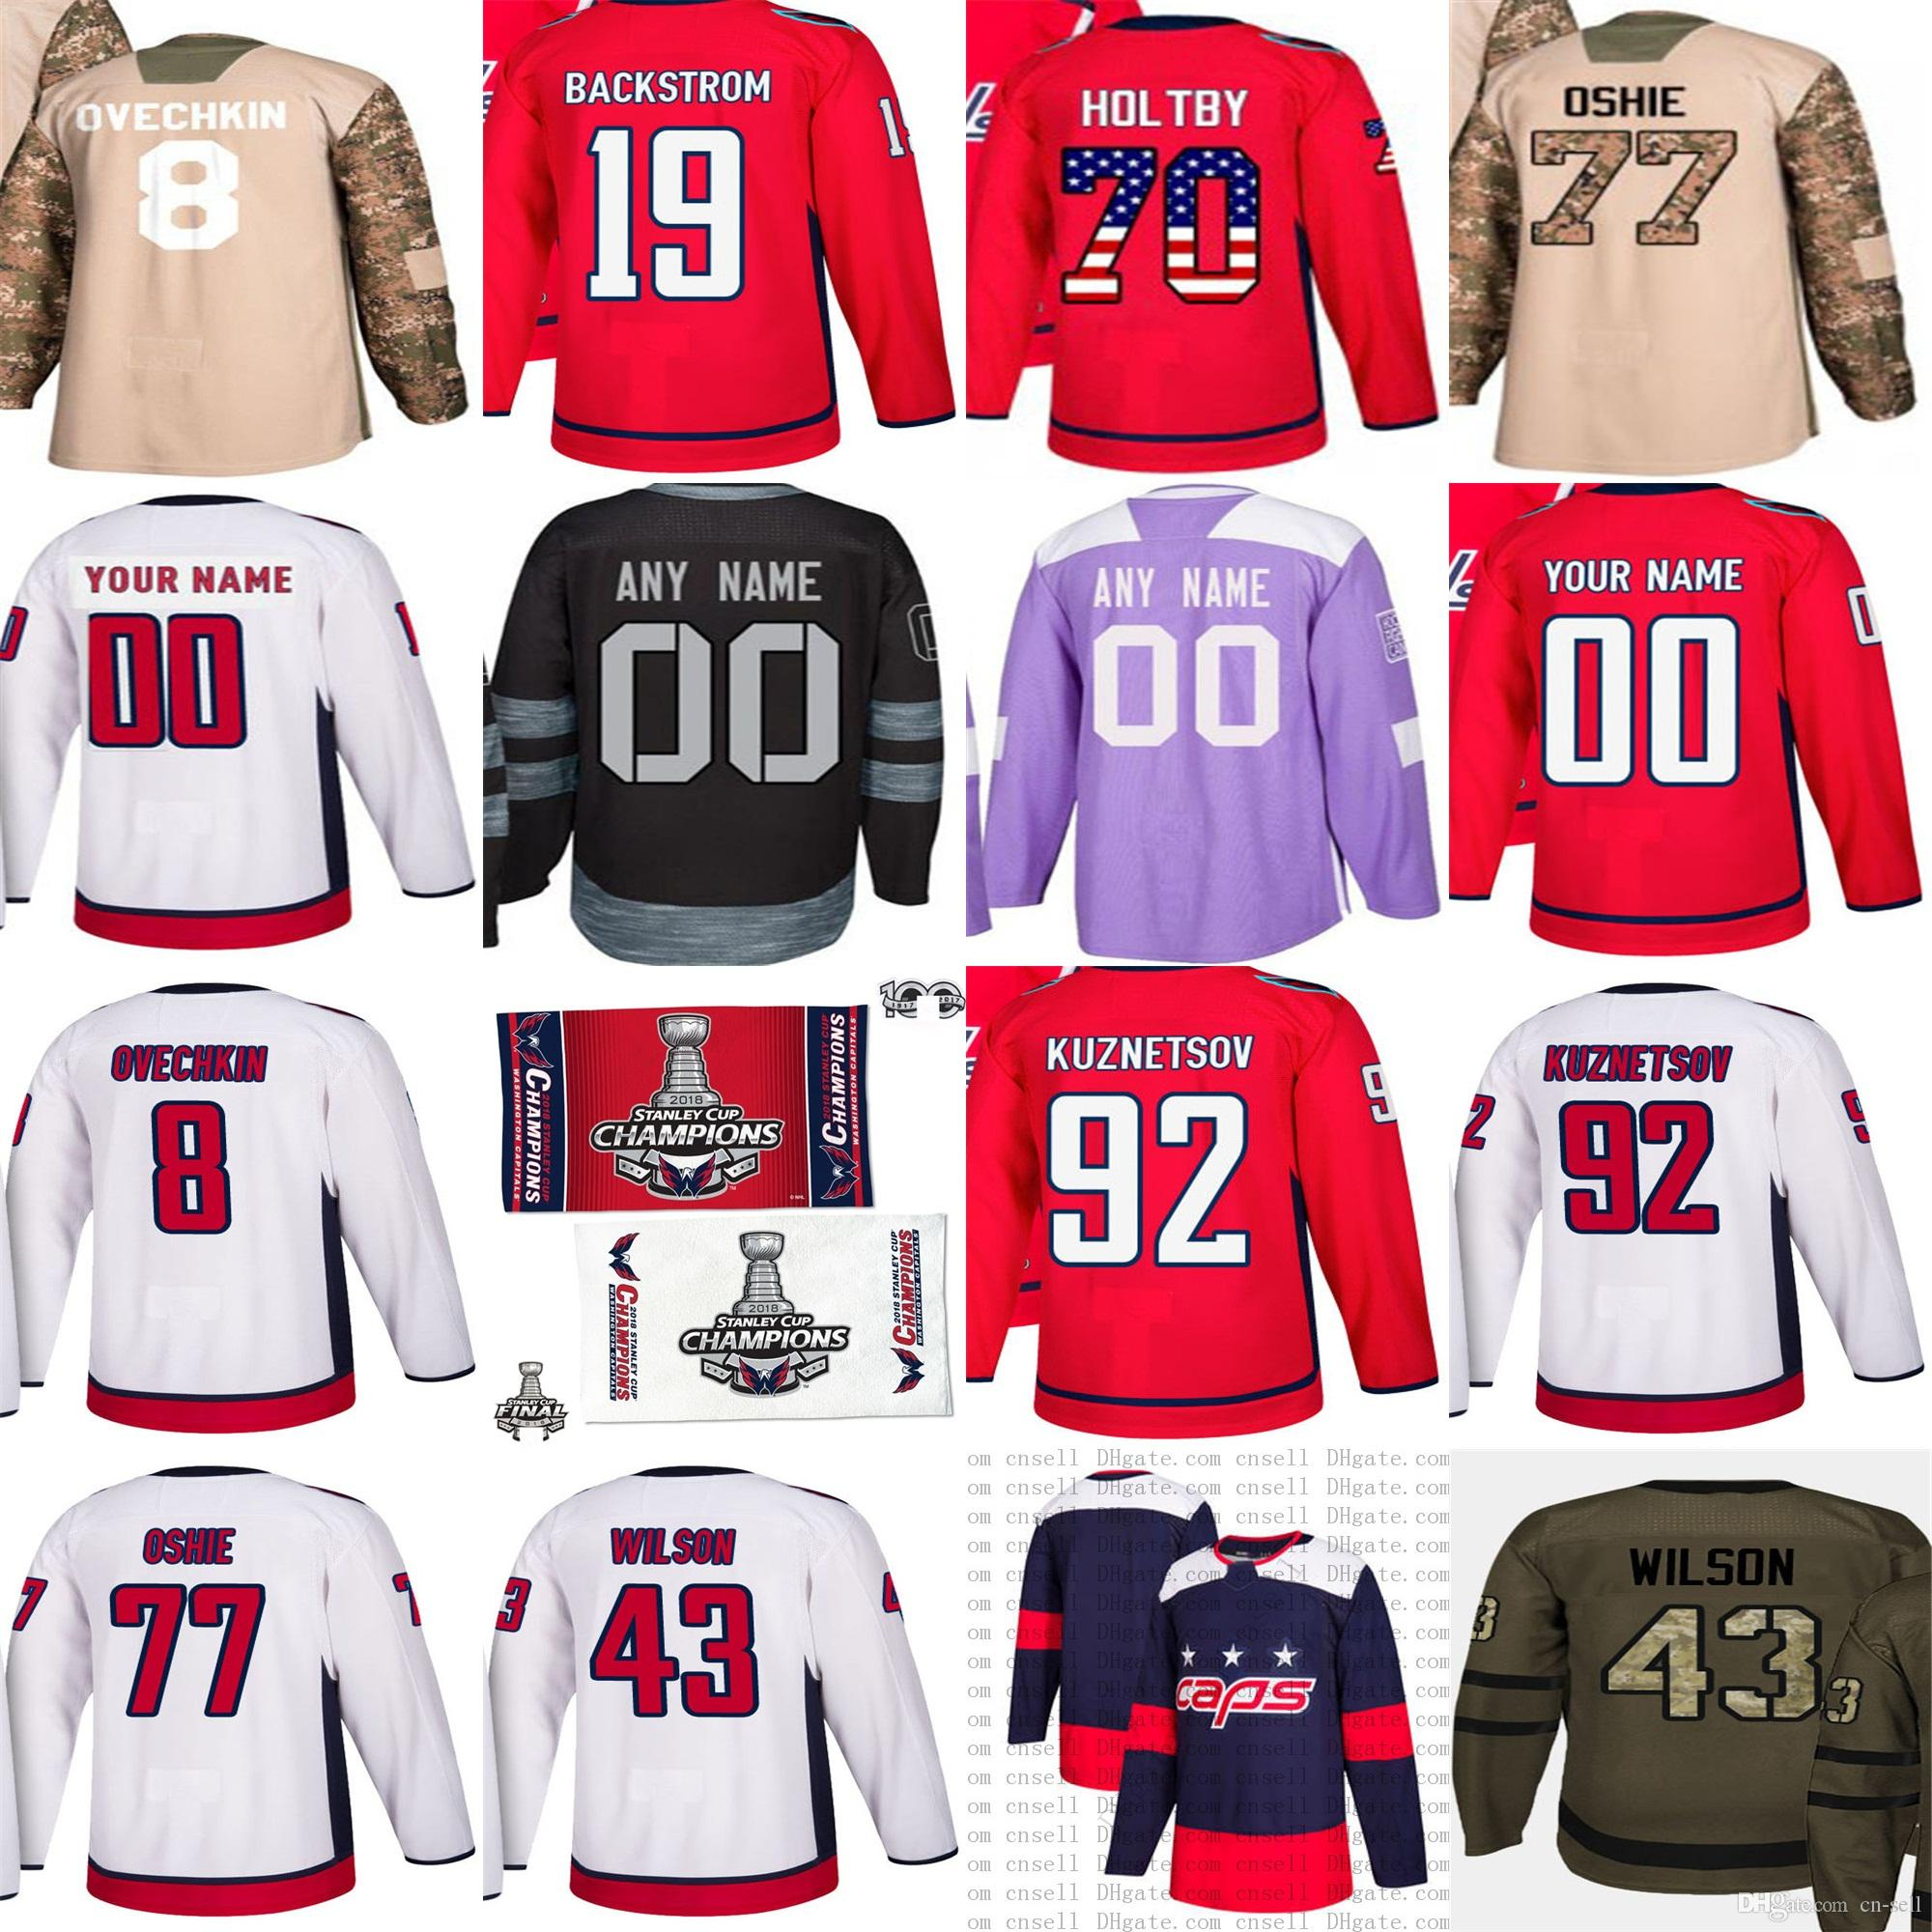 cc7896ff4 2019 Mens Youth 2018 Stanley Cup Final Champion Patch Custom 100th Hockey  Jerseys Washington Capitals Oshie 8 Alex Ovechkin Nicklas Backstrom From Cn  Sell